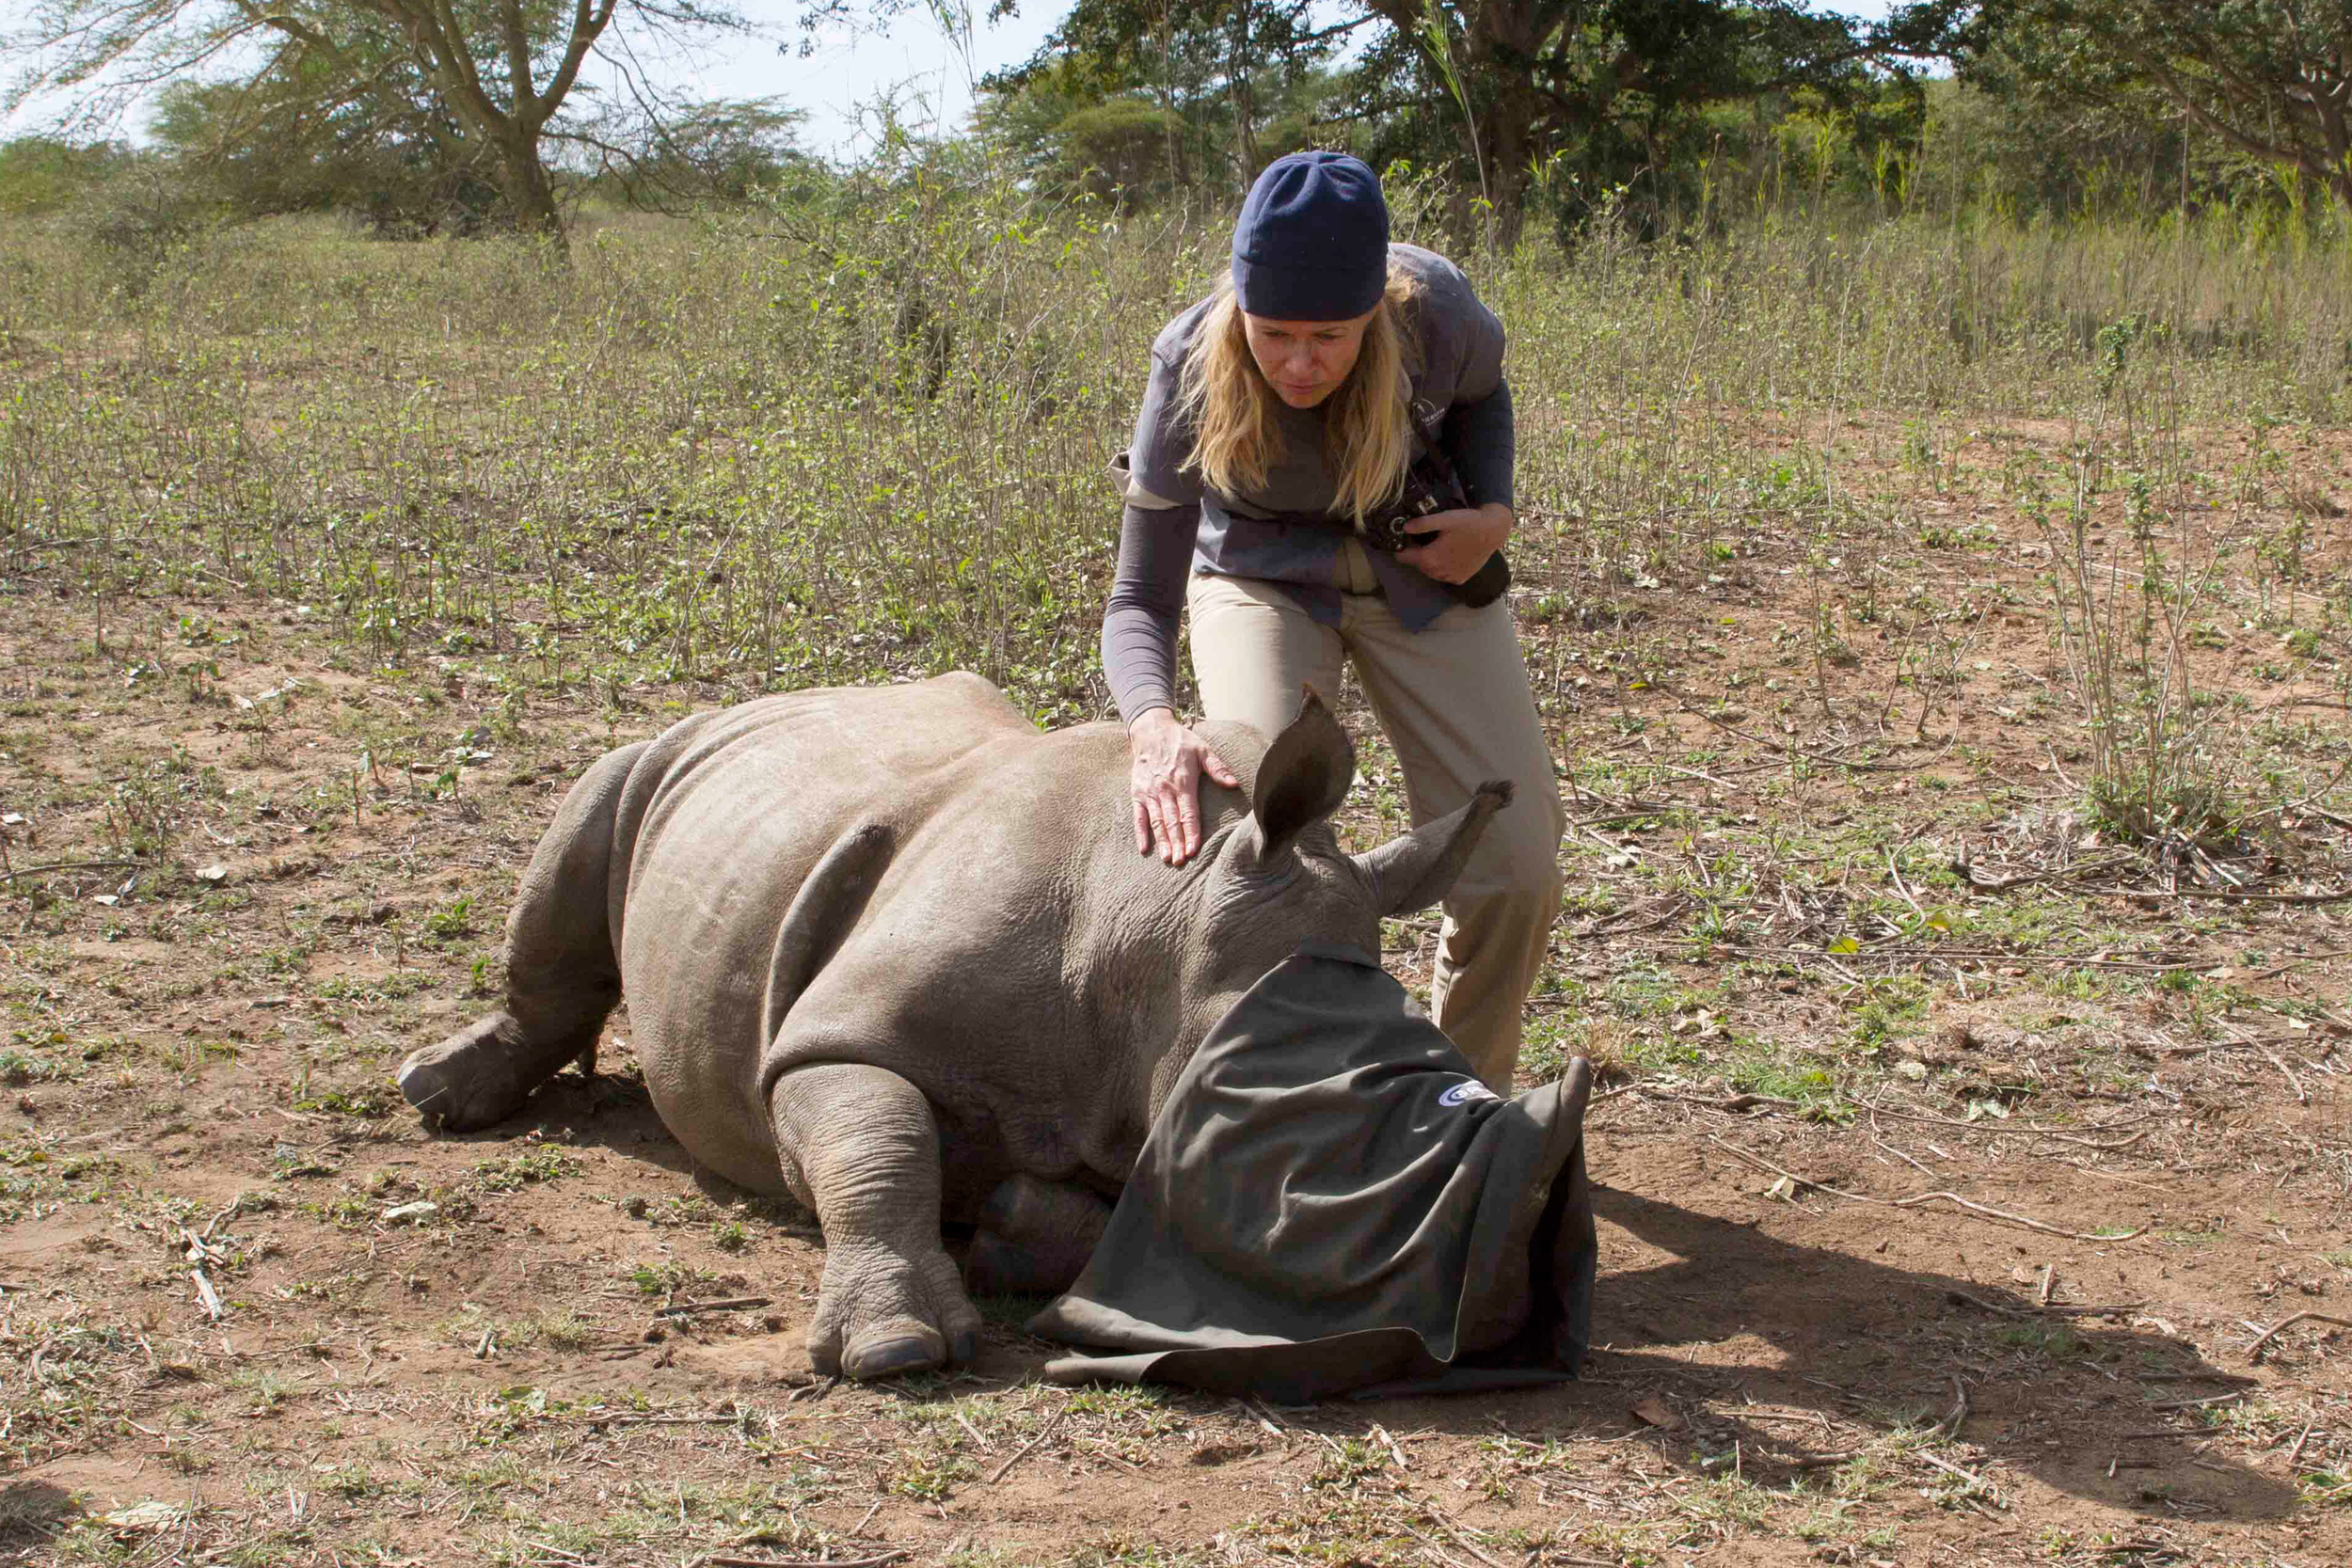 Providing a baby rhino care (it's only sleeping)